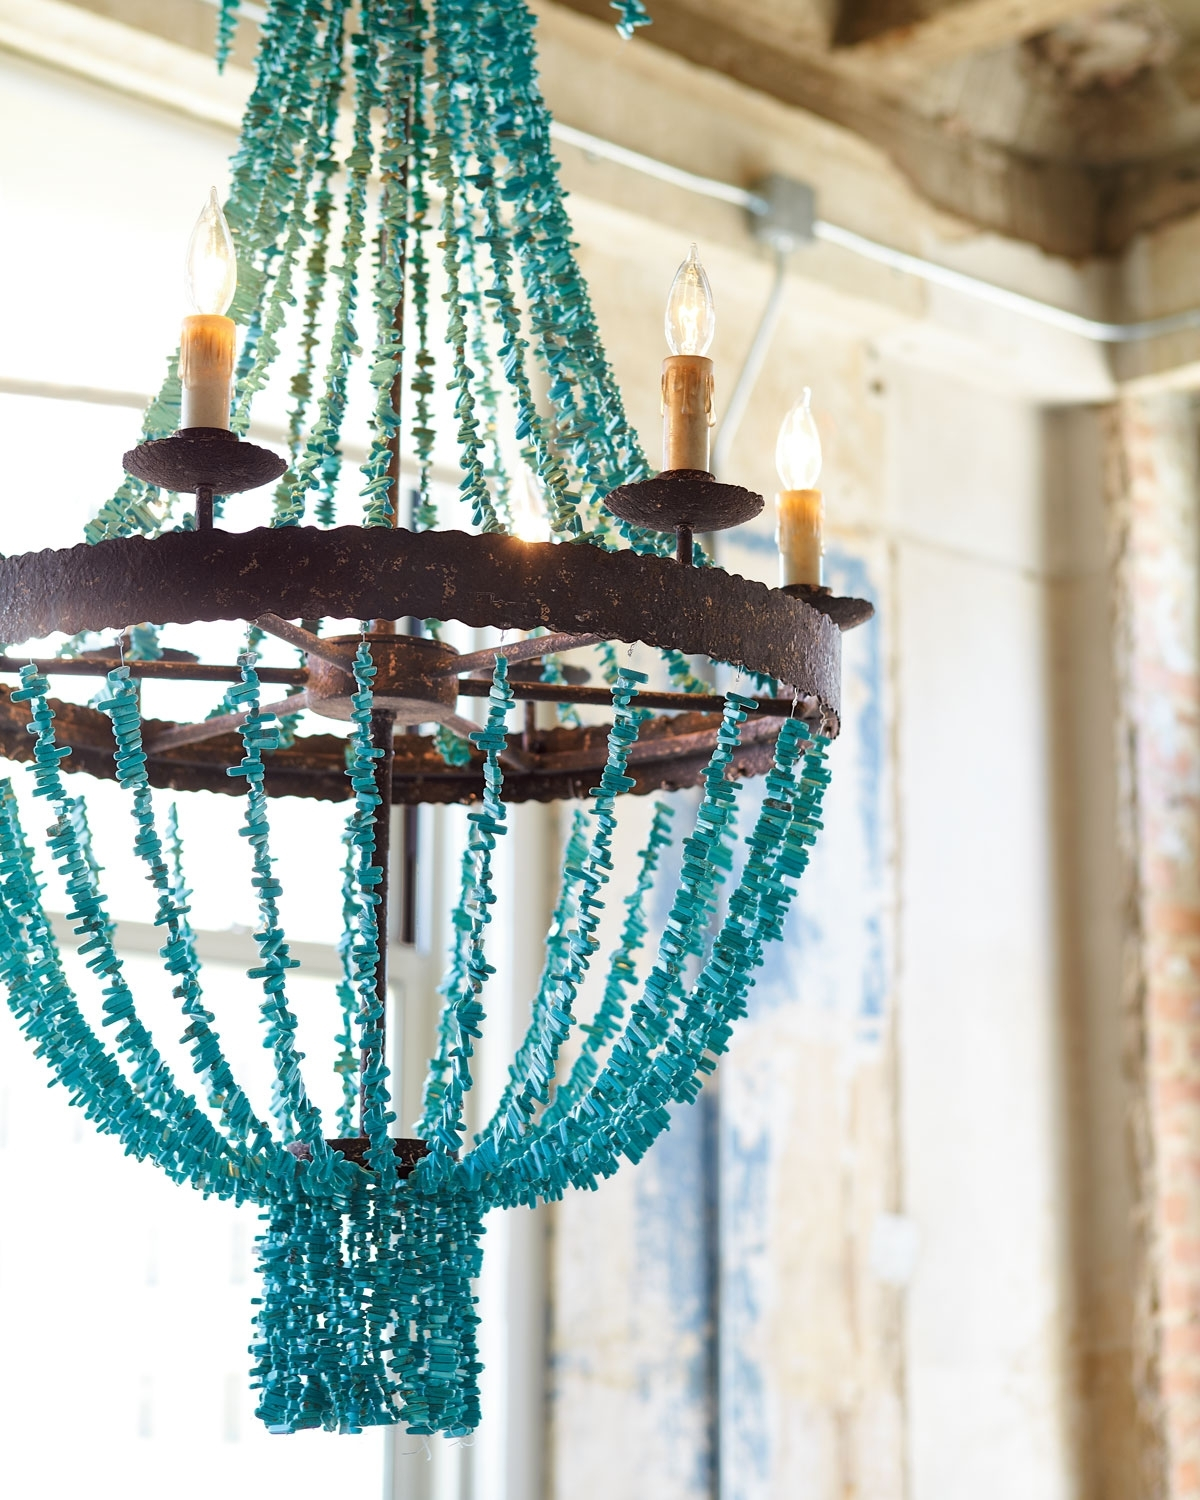 Recent Turquoise Orb Chandeliers Throughout Teal Chandelier (View 15 of 15)